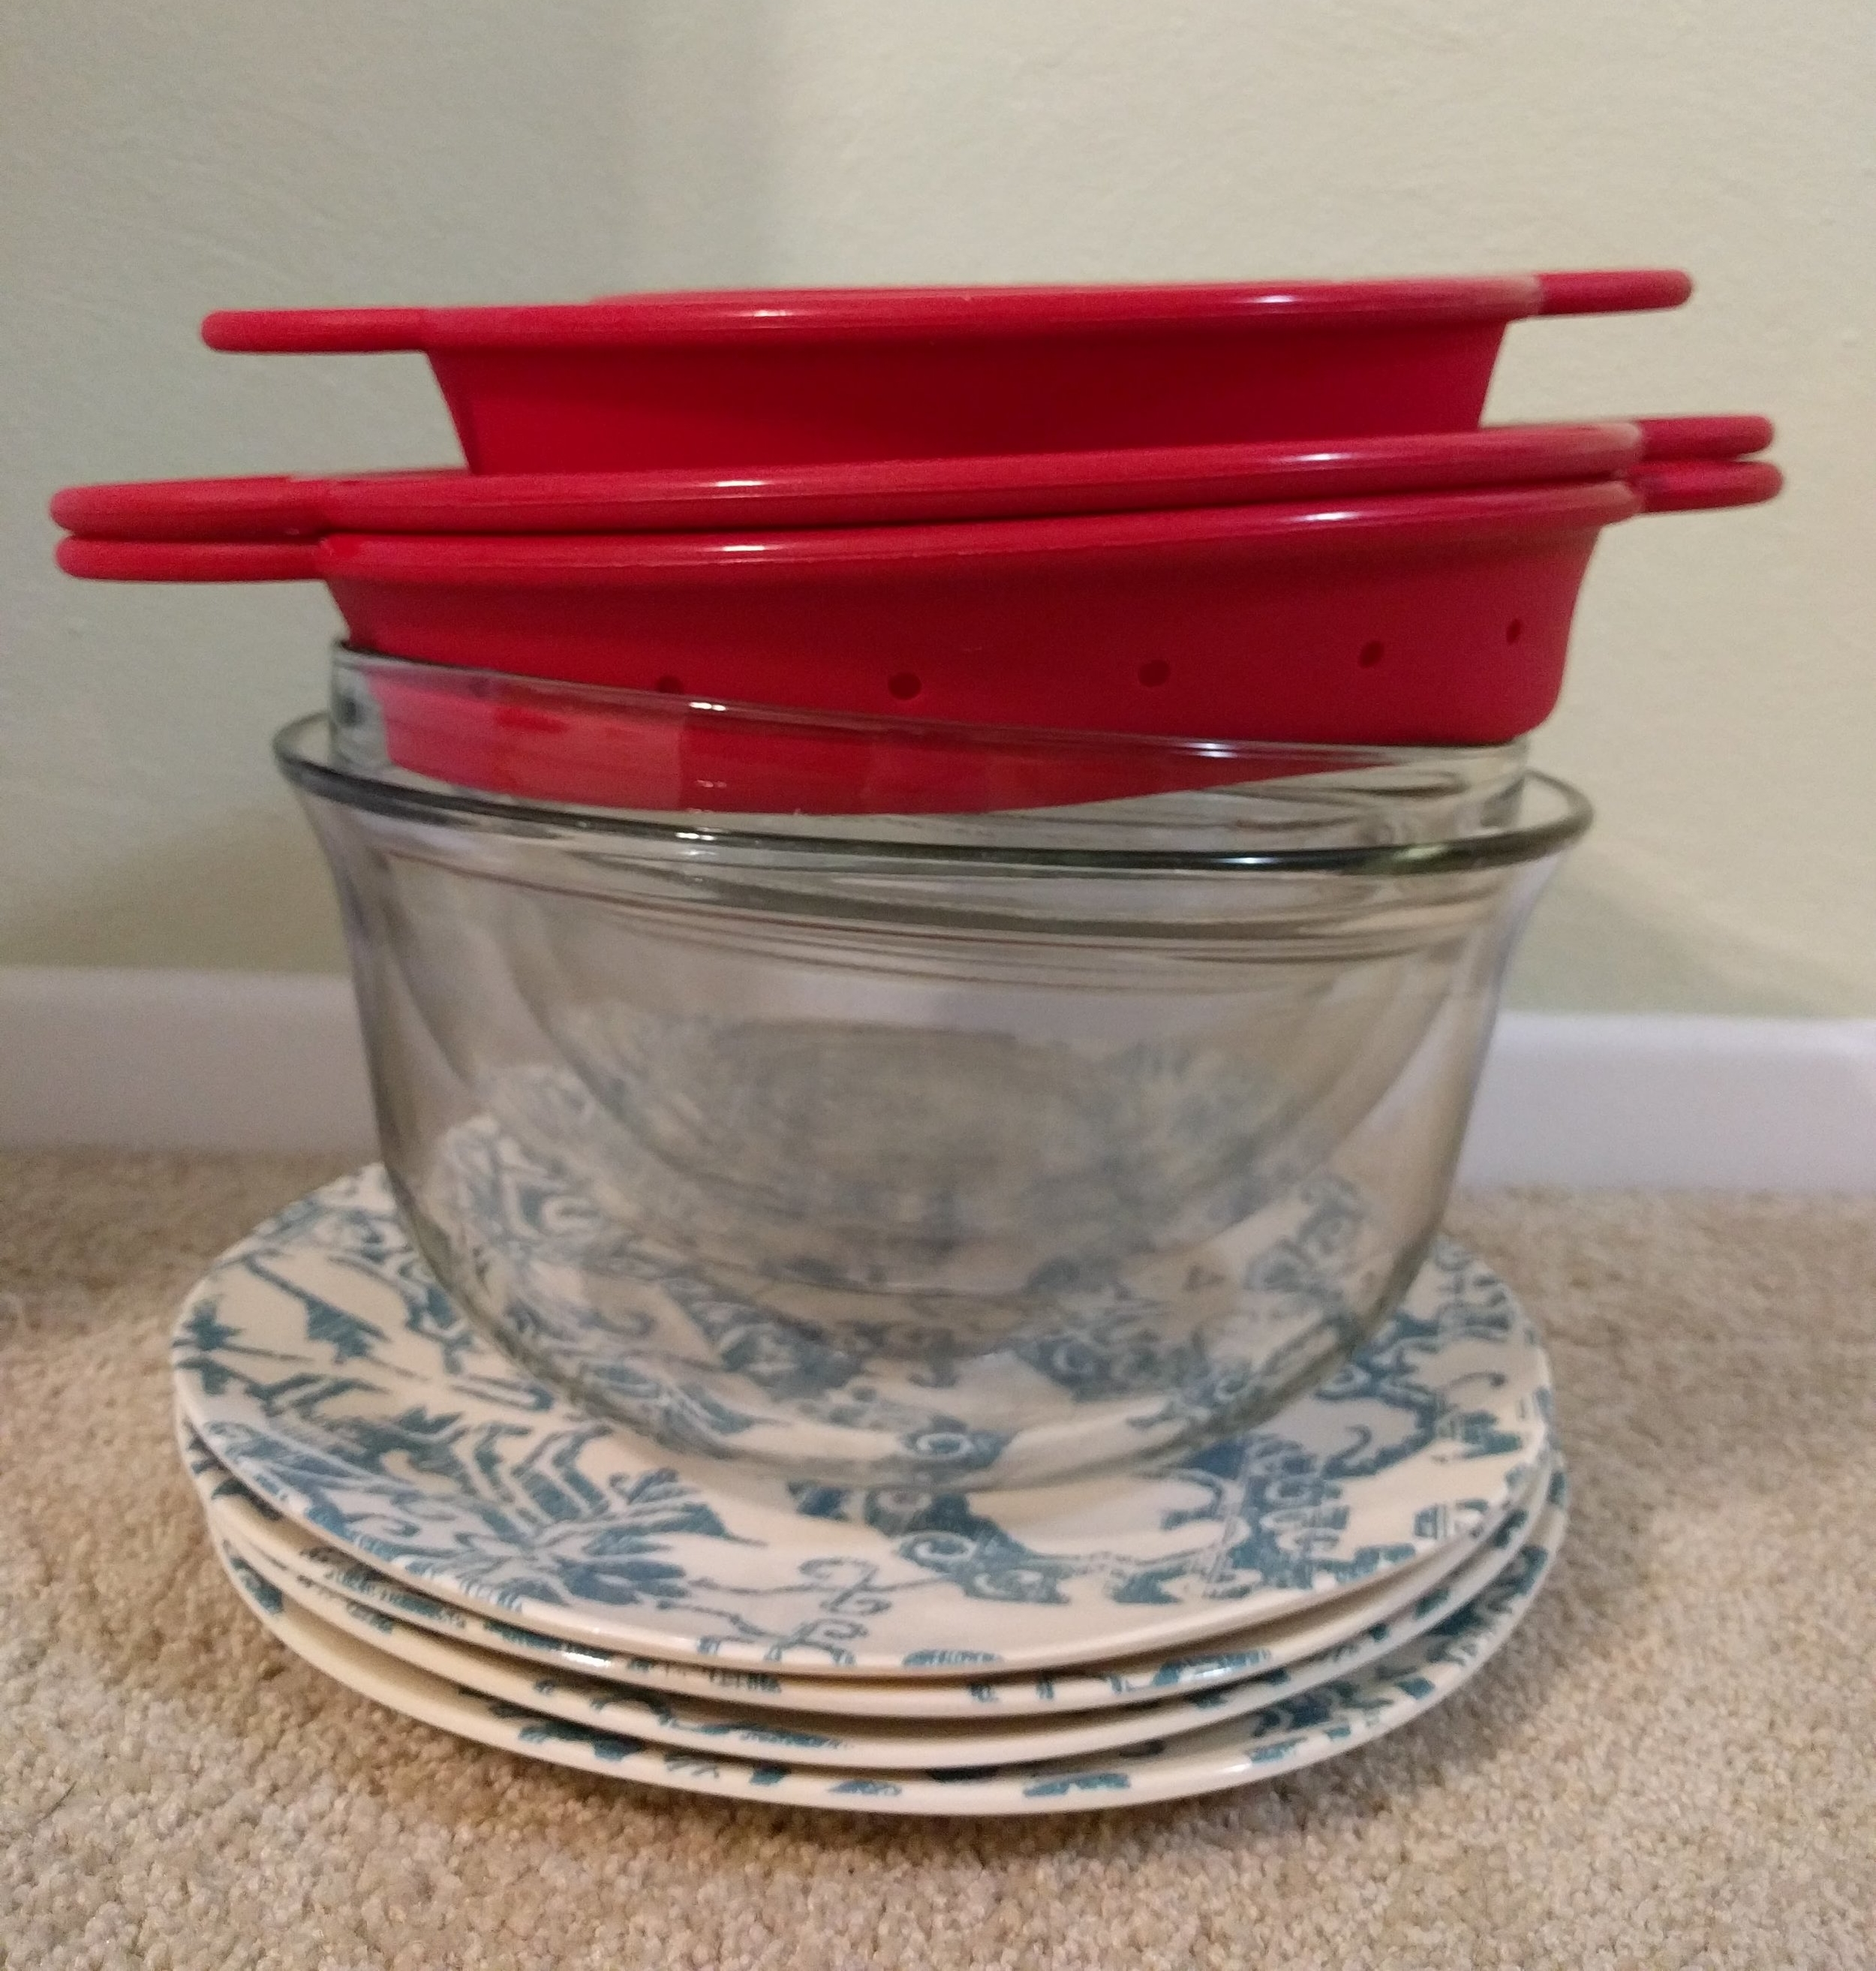 I decided I needed a new mixing bowl. So at the half price sale at Goodwill this month I purchased three mixing bowls, two collapsible mixing bowls, two strainers, and four plates. Yep. Cause' that makes sense...